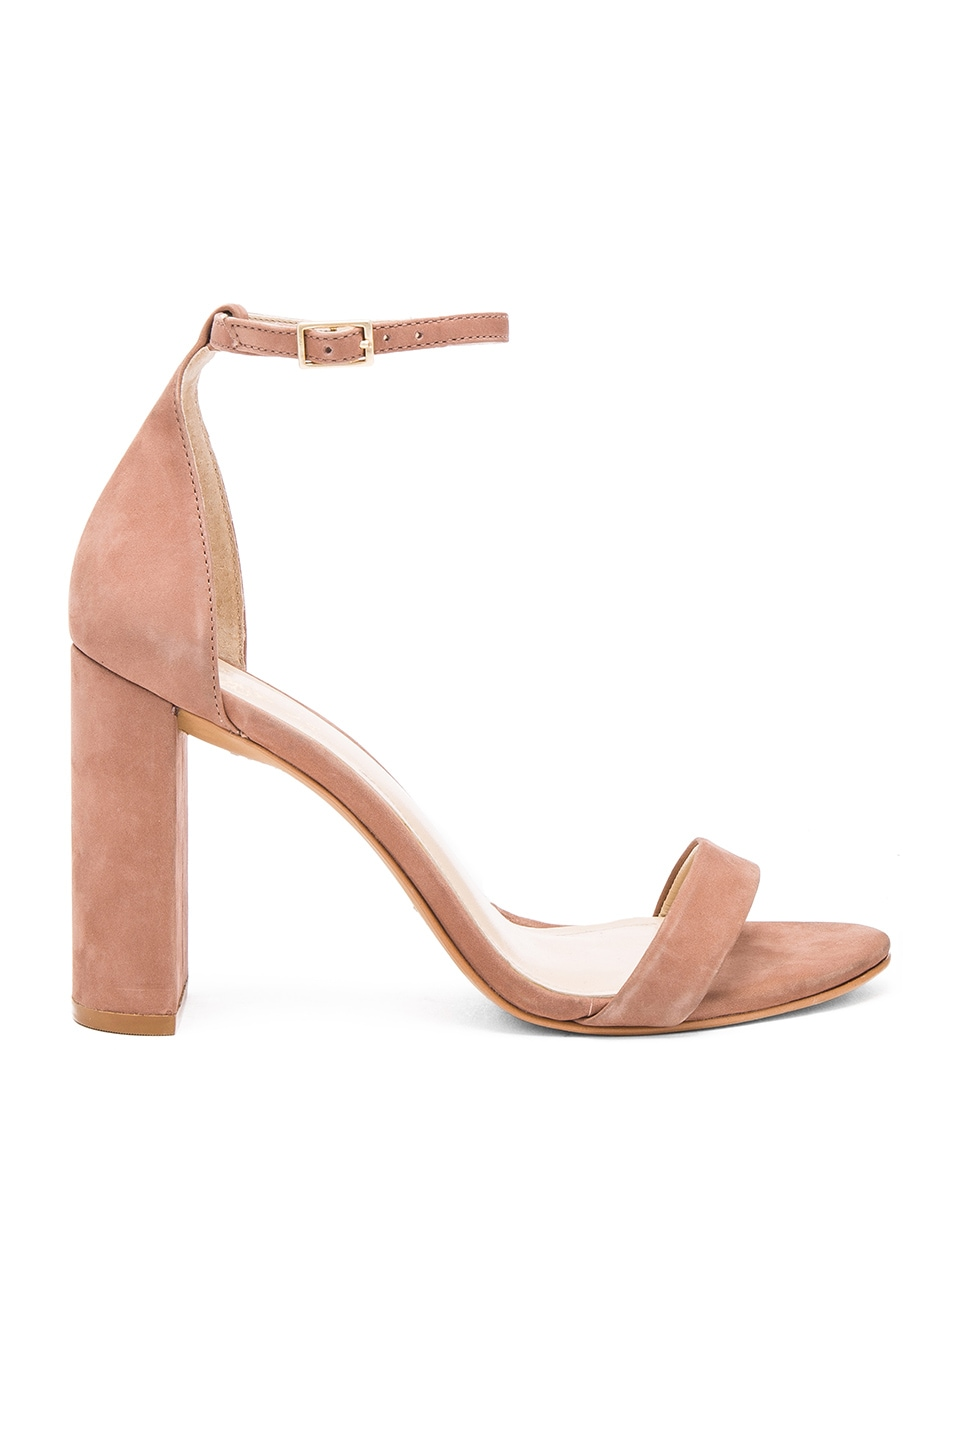 Vince Camuto Mairana Heel in Dusty Rose